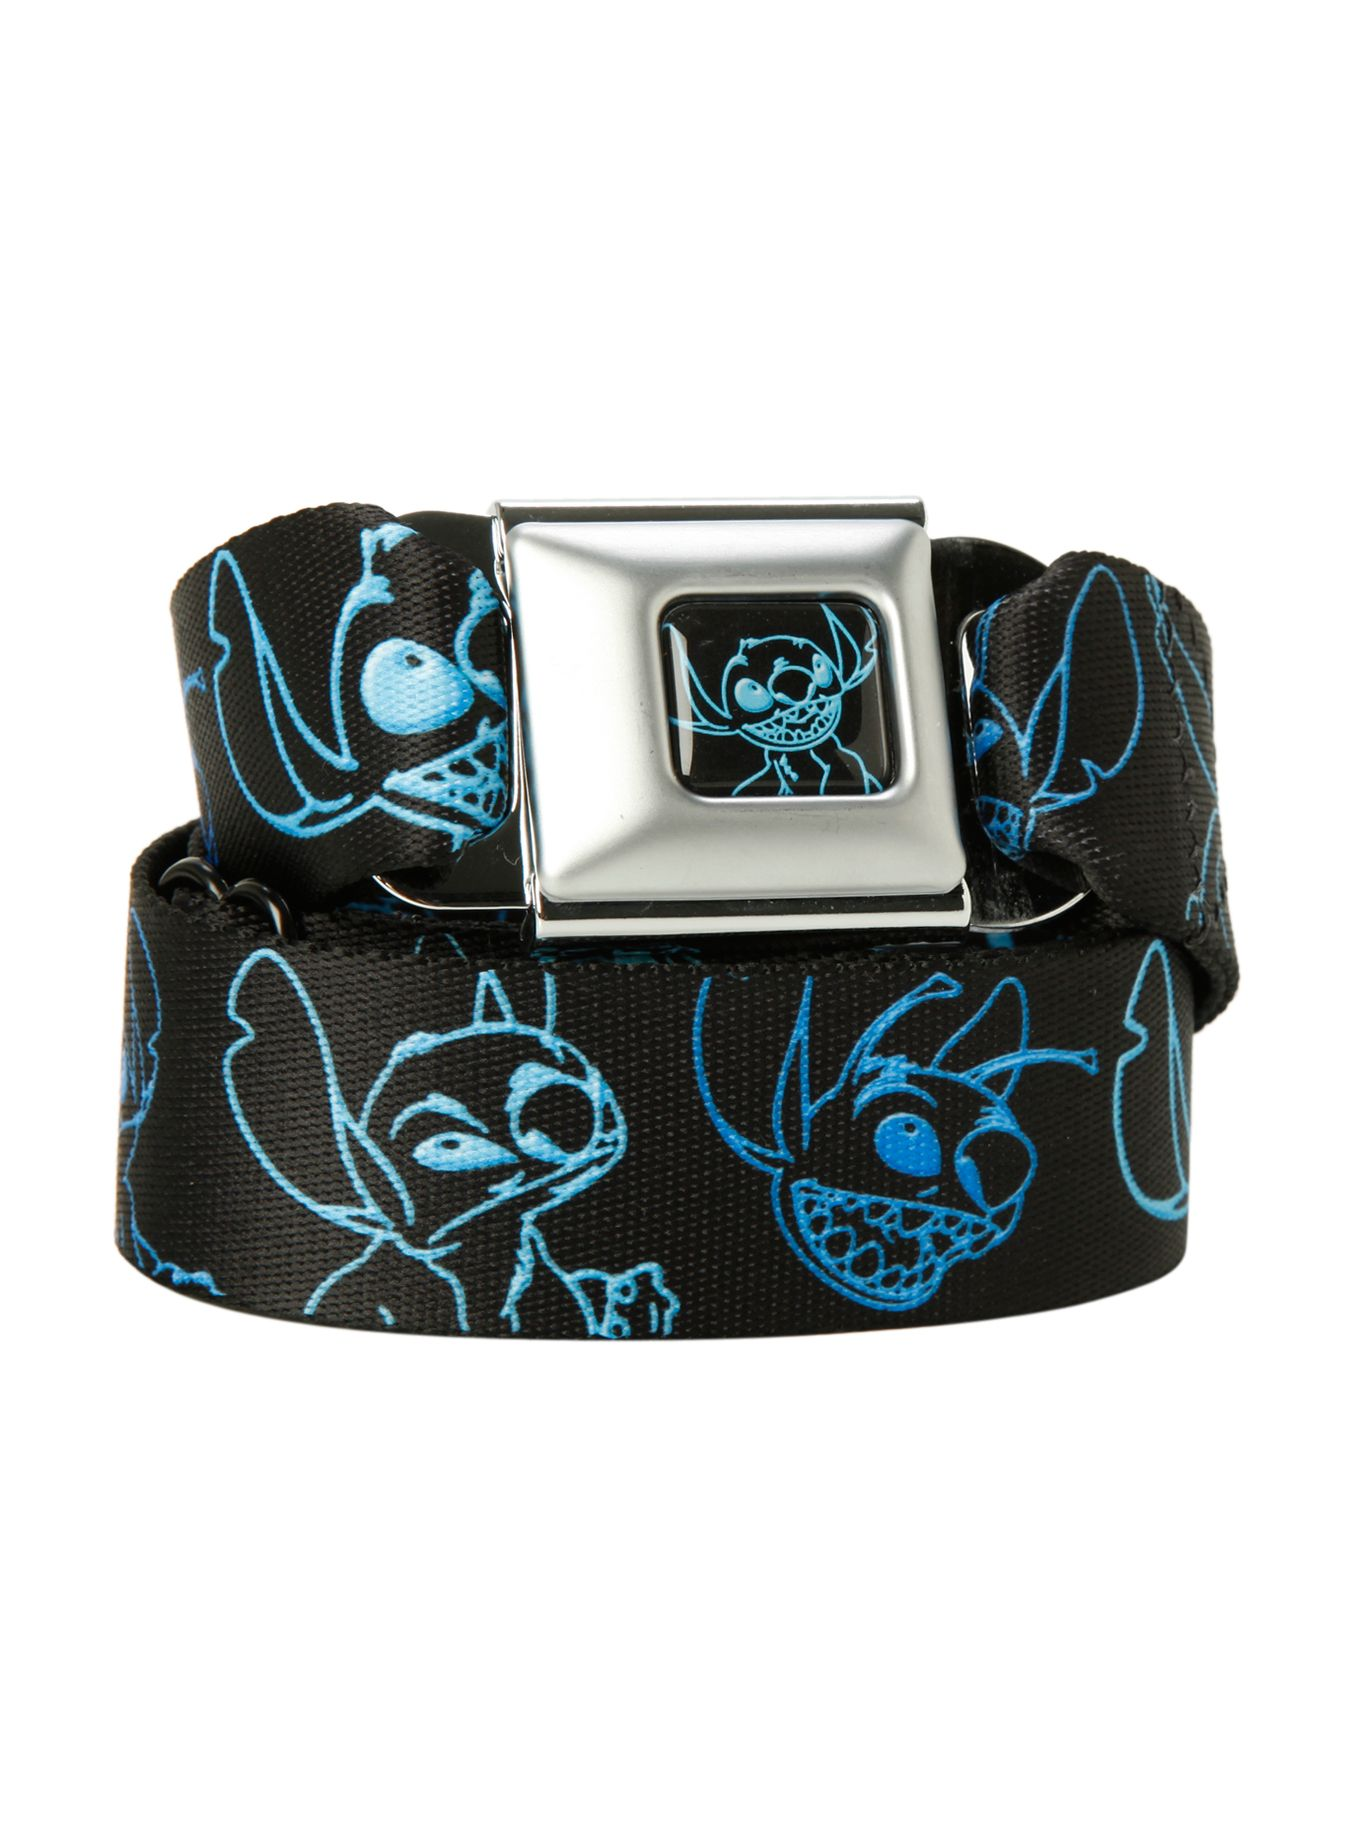 Disney Lilo & Stitch Outline Seat Belt Belt Hot Topic